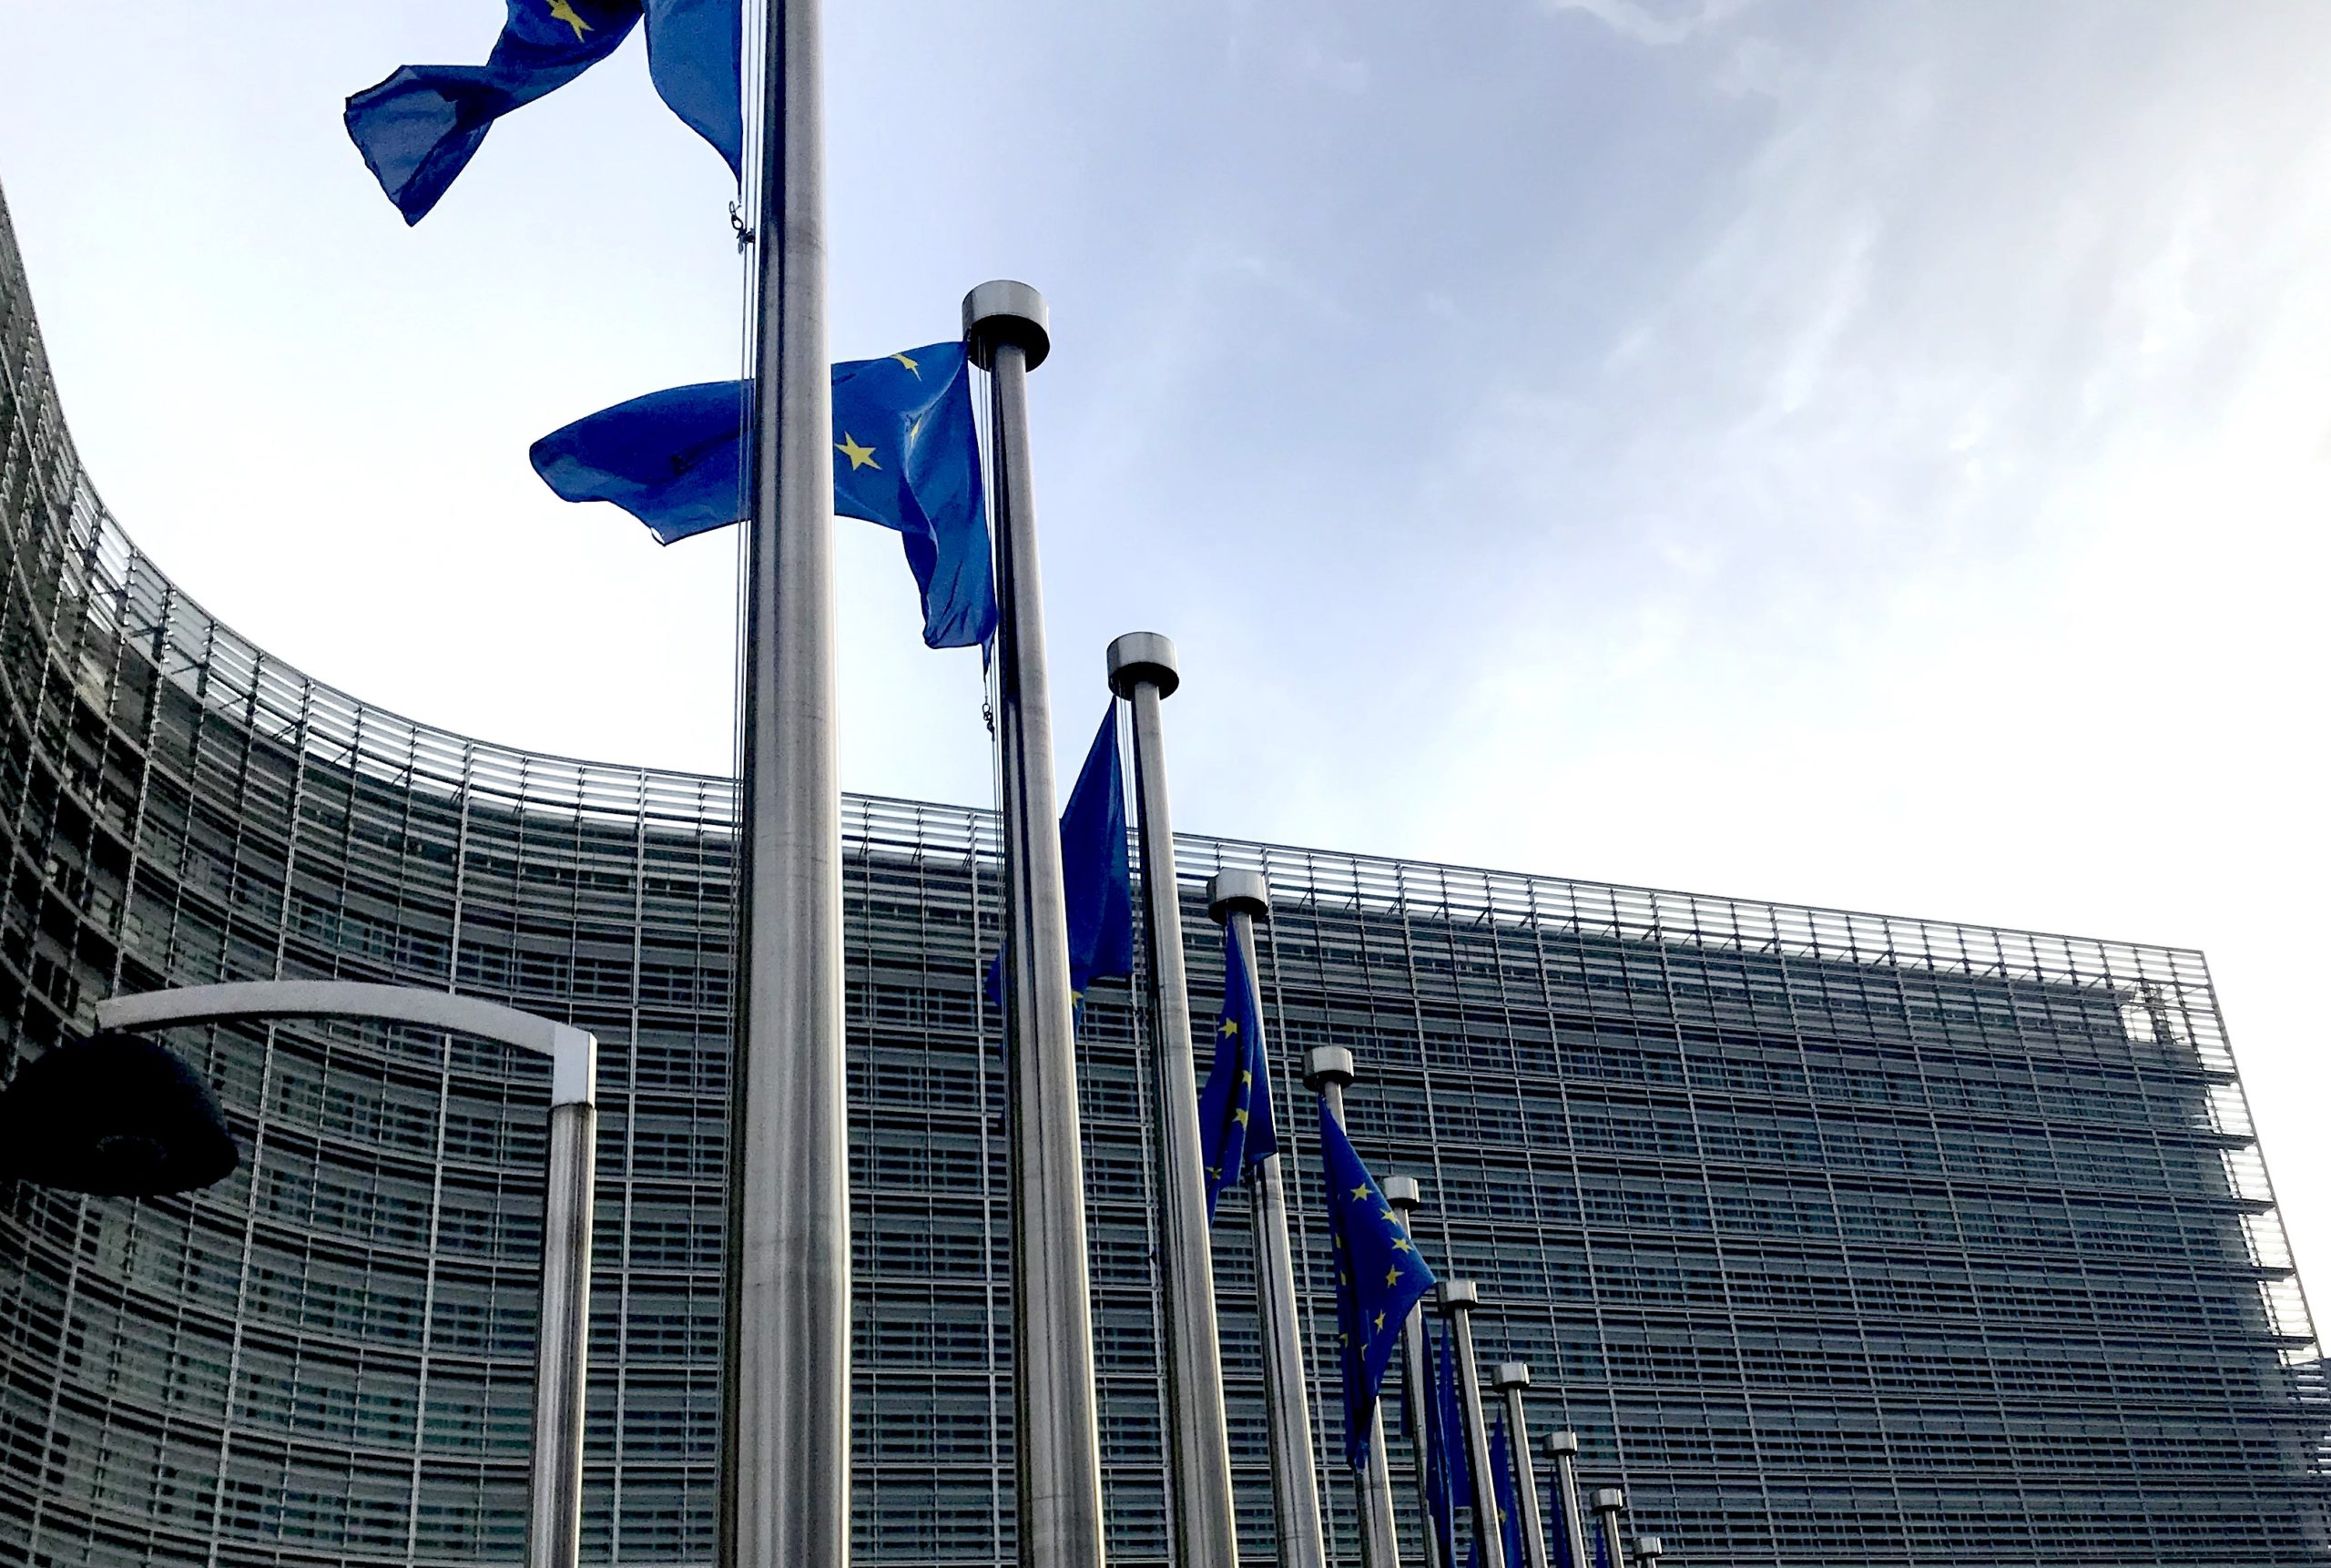 Kinnected's response to European Commission's White Paper on Excellence, Trust, and Artificial Intelligence